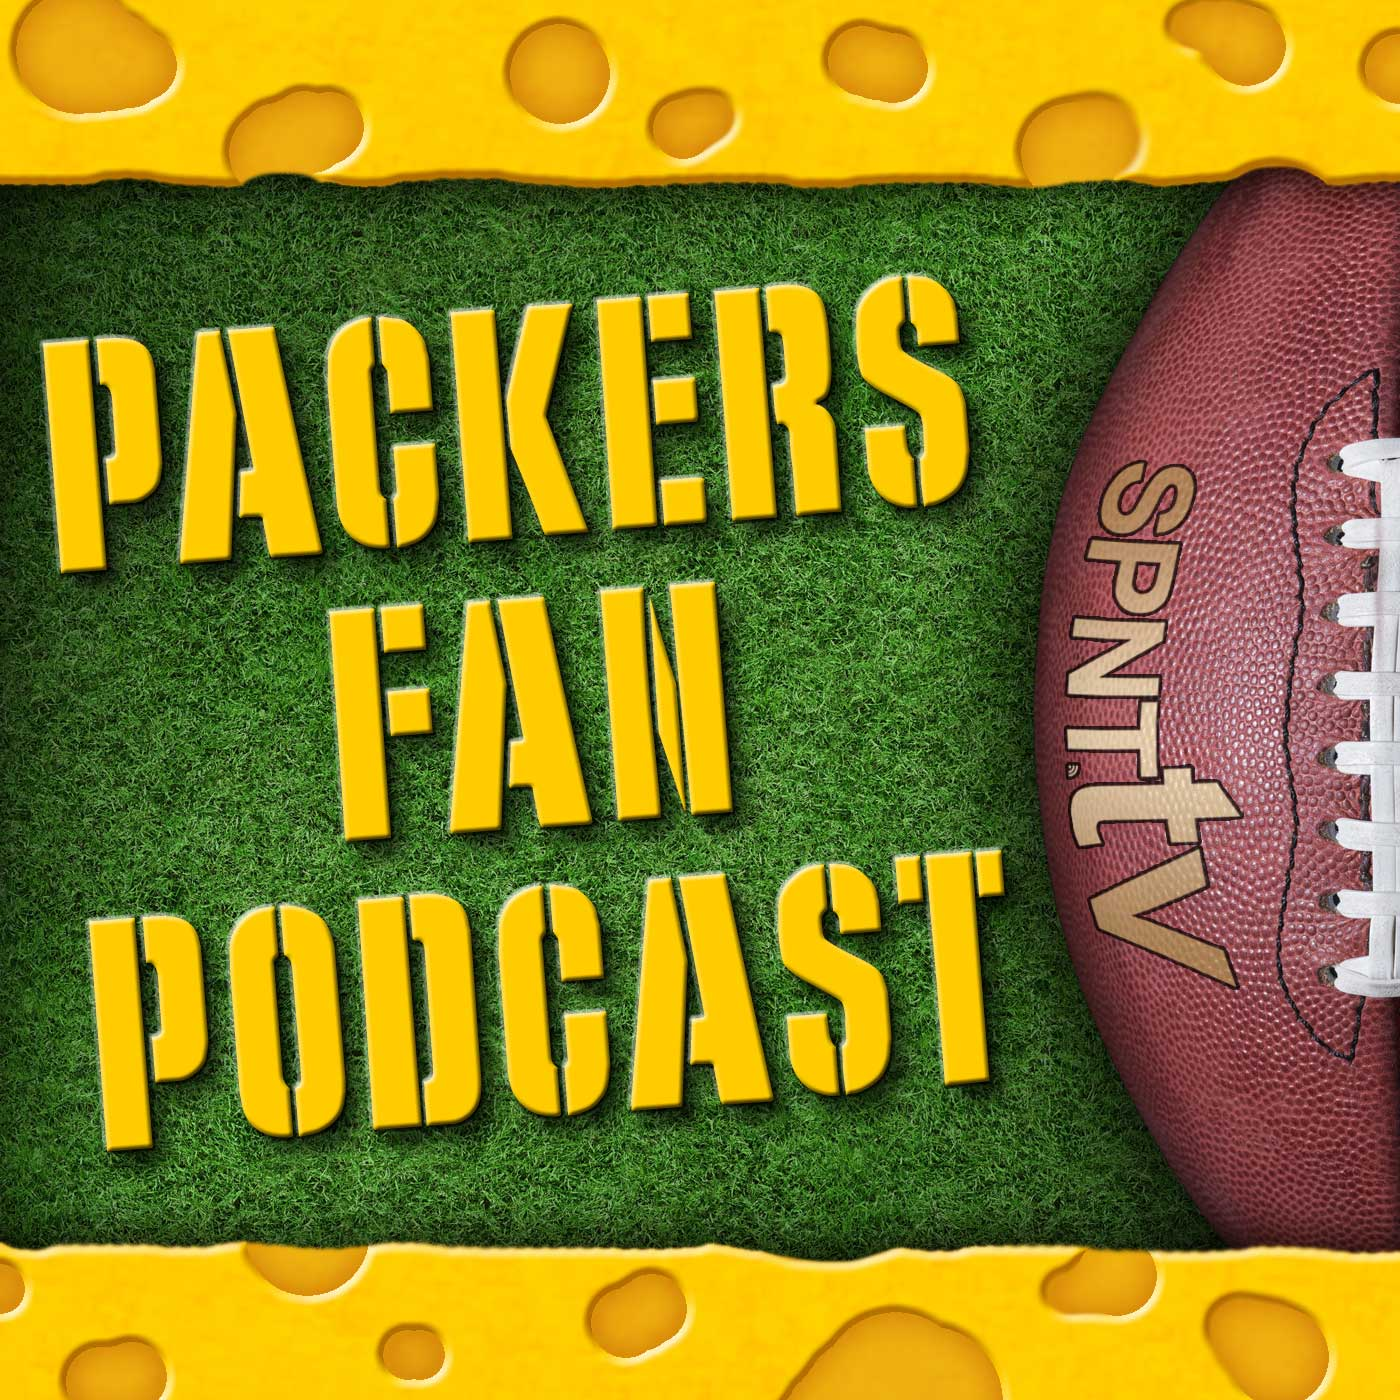 Packers Fan Podcast | The Sound From Titletown | Unofficial NFL Fan Talk about the Green Bay Packers